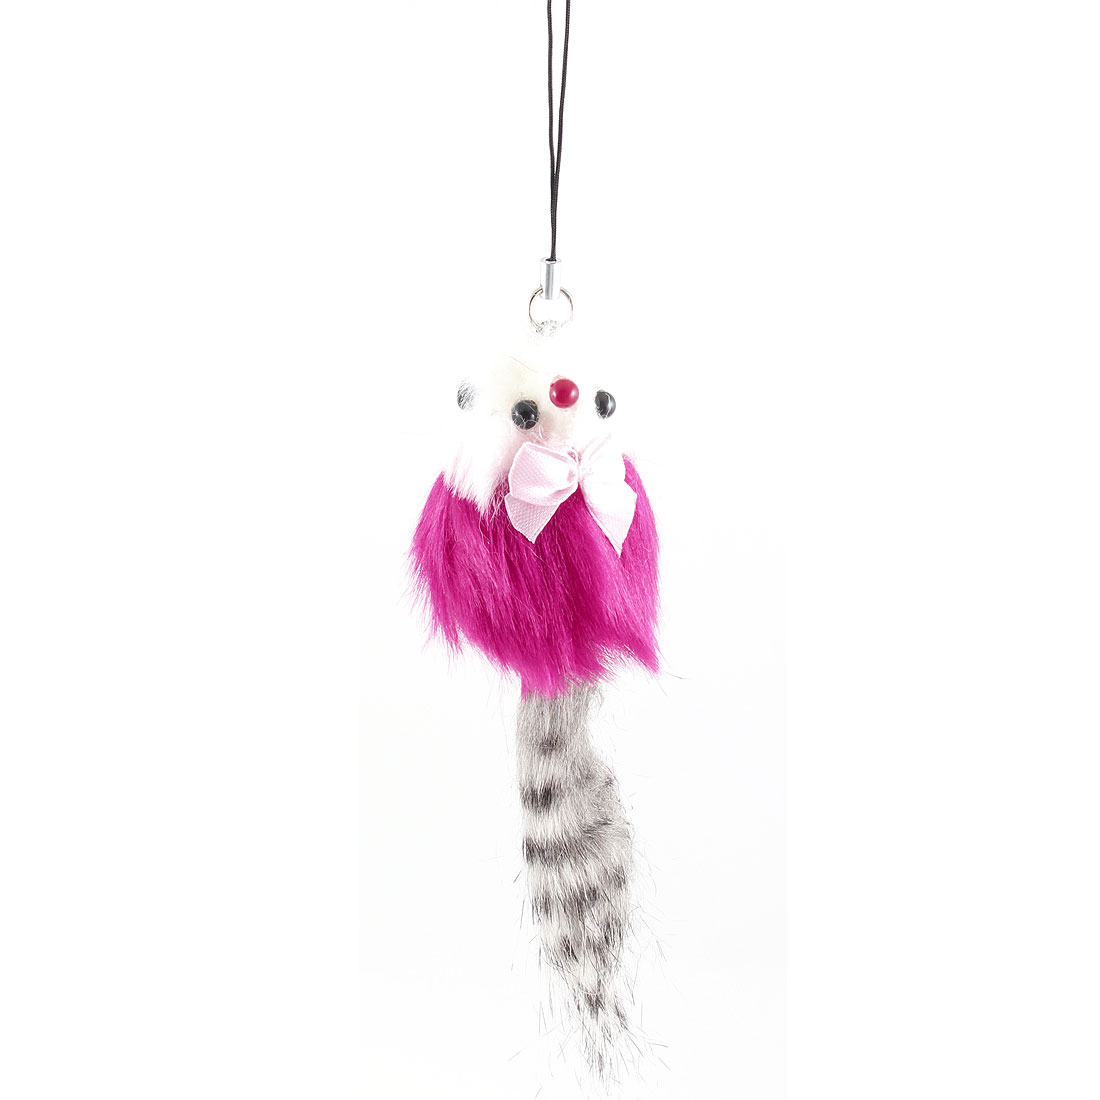 Carmine Gray Feather Pink Bow Dec Mouse Strap Pendant for Phone Handbag